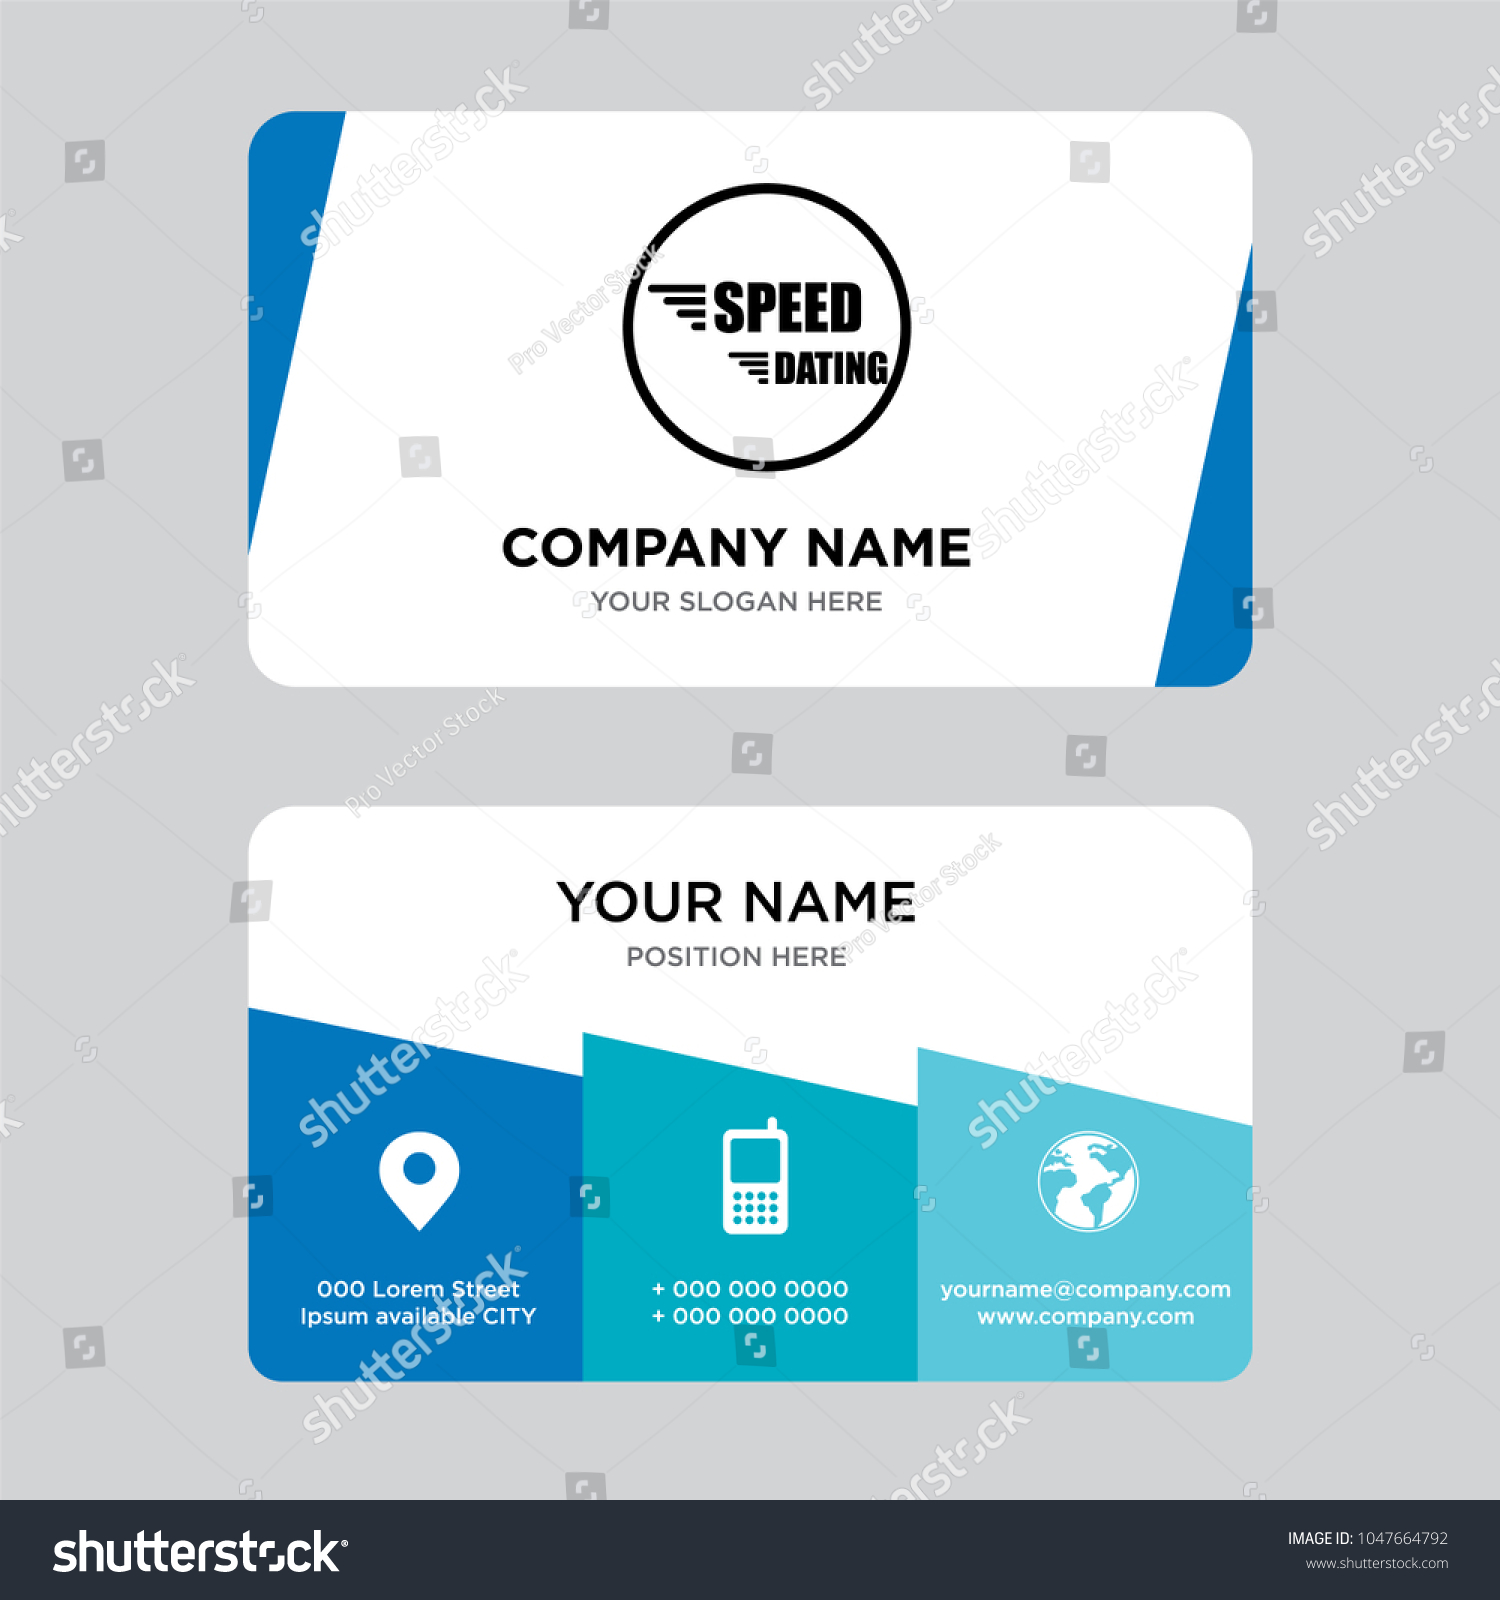 Speed Dating Business Card Design Template Stock Photo (Photo ...